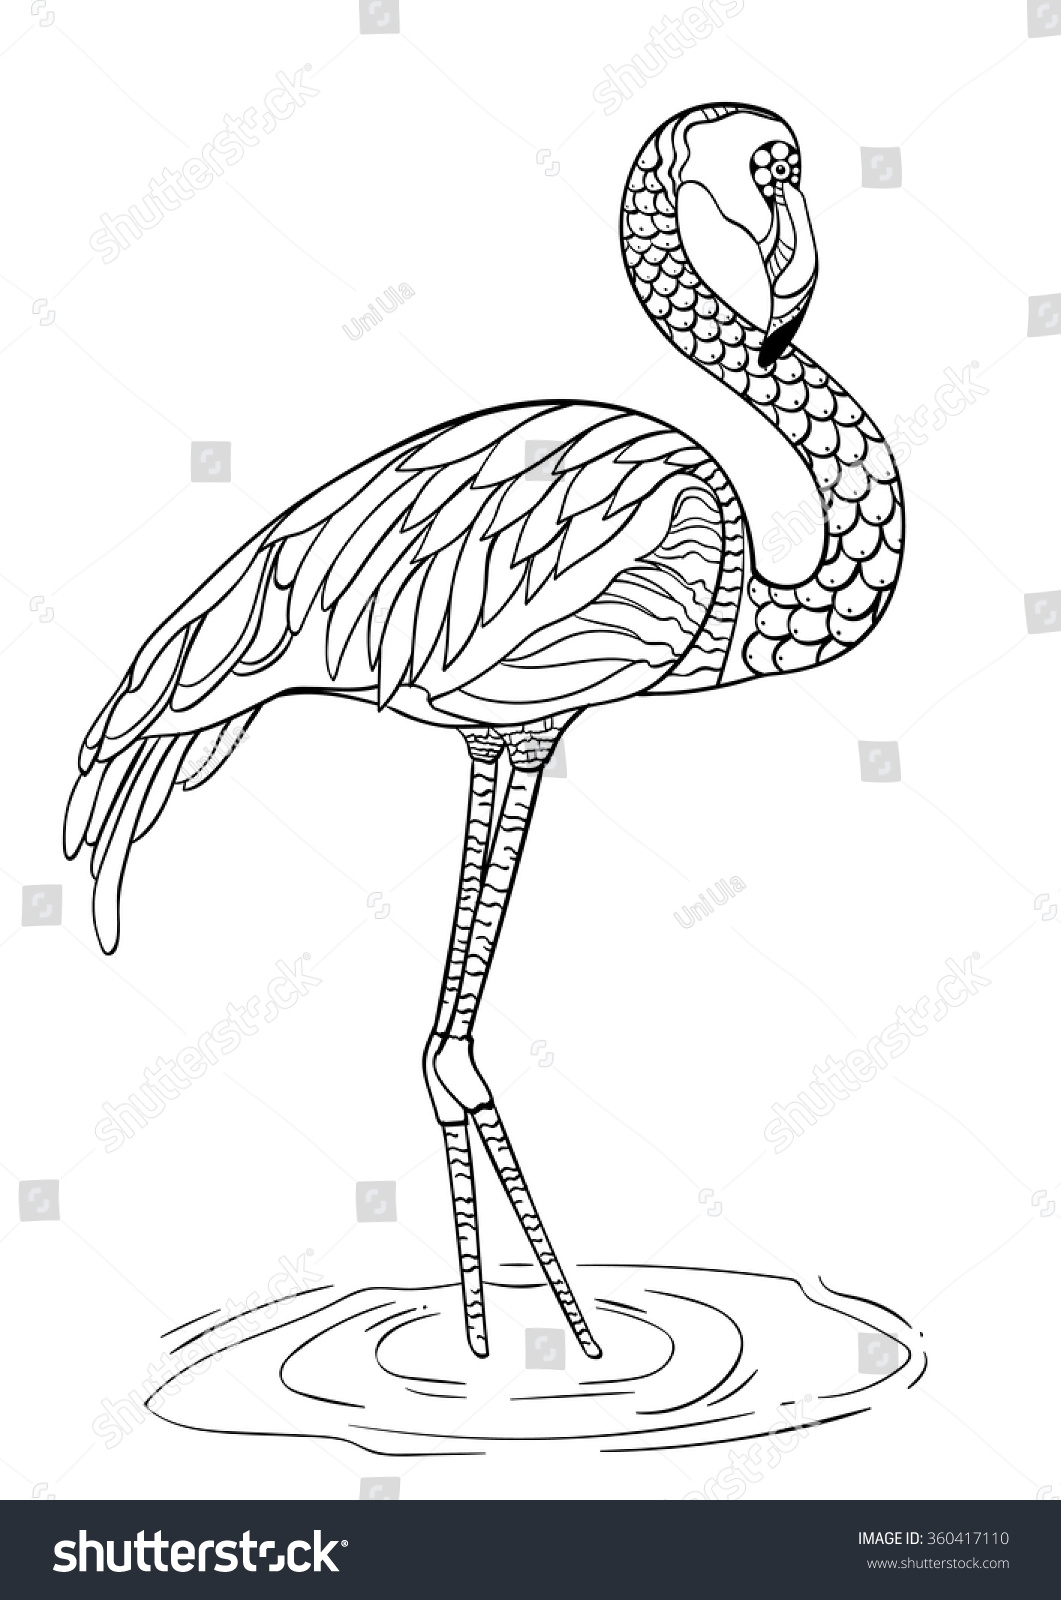 Coloring sheets for adults flamingo - Coloring Book Page Flamingo Hand Drawn Vector Illustration Decorative Ornamental Doodle